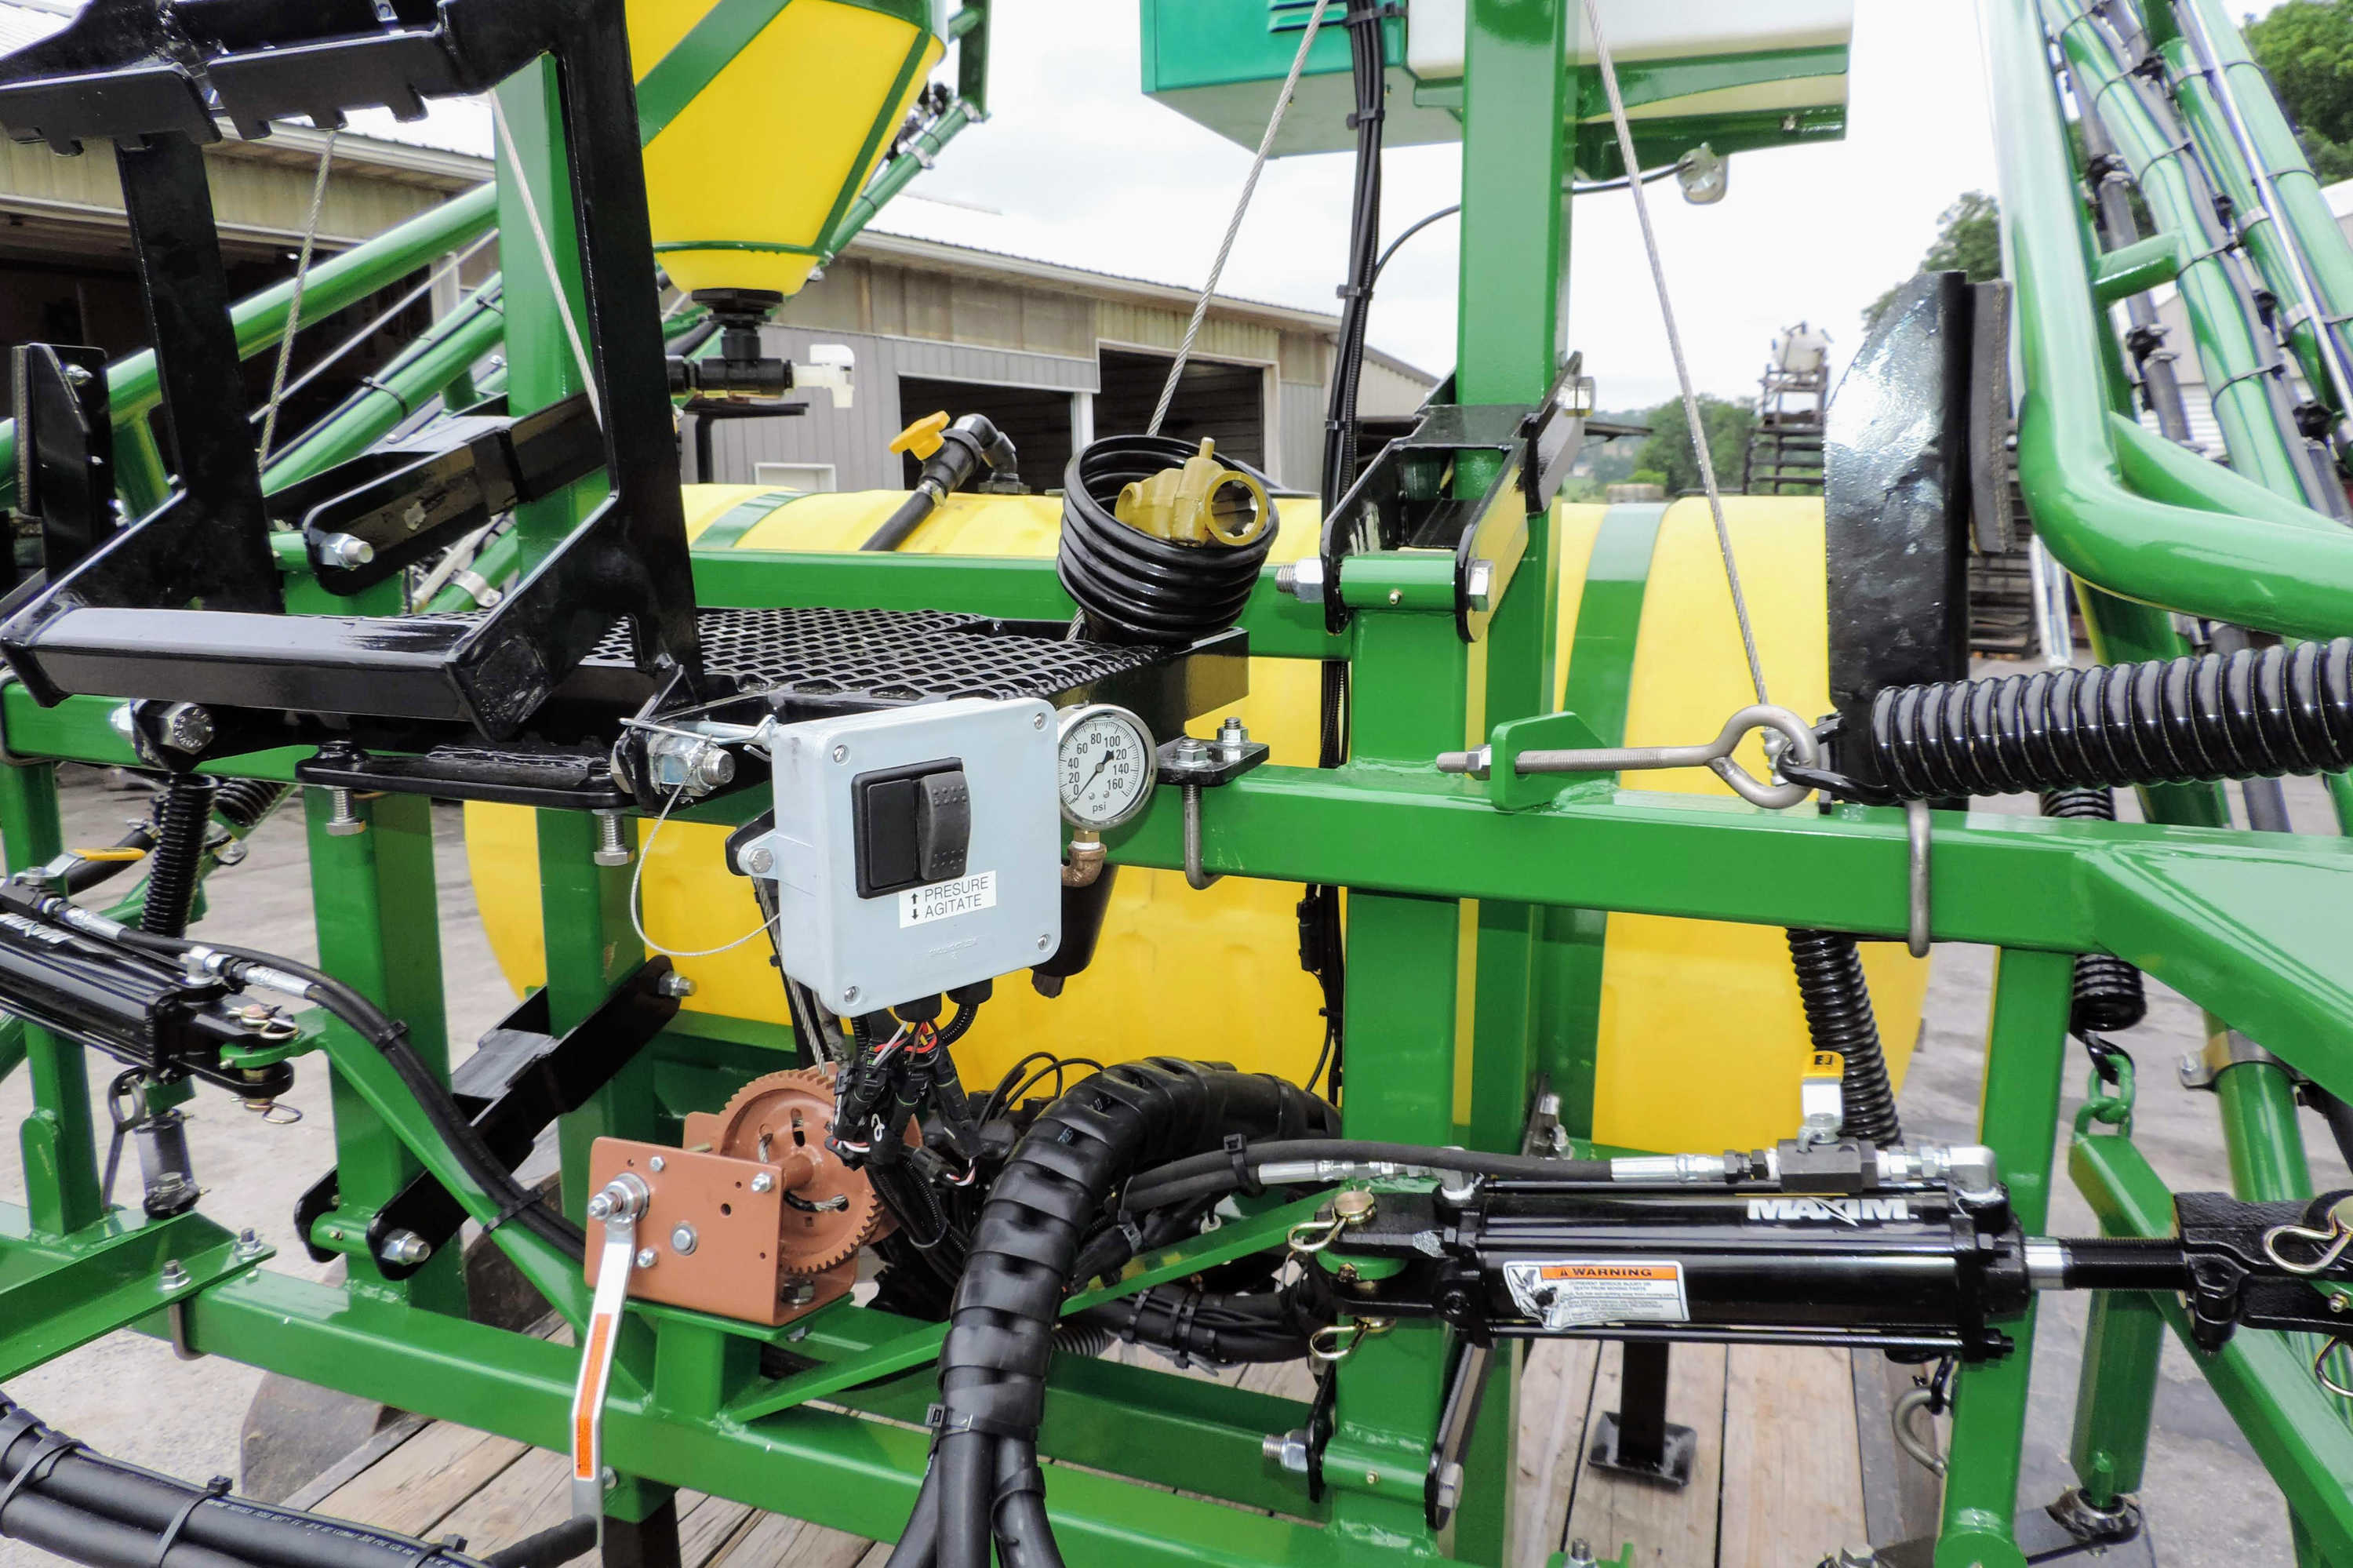 200 gallon 3-point Hitch Sprayer